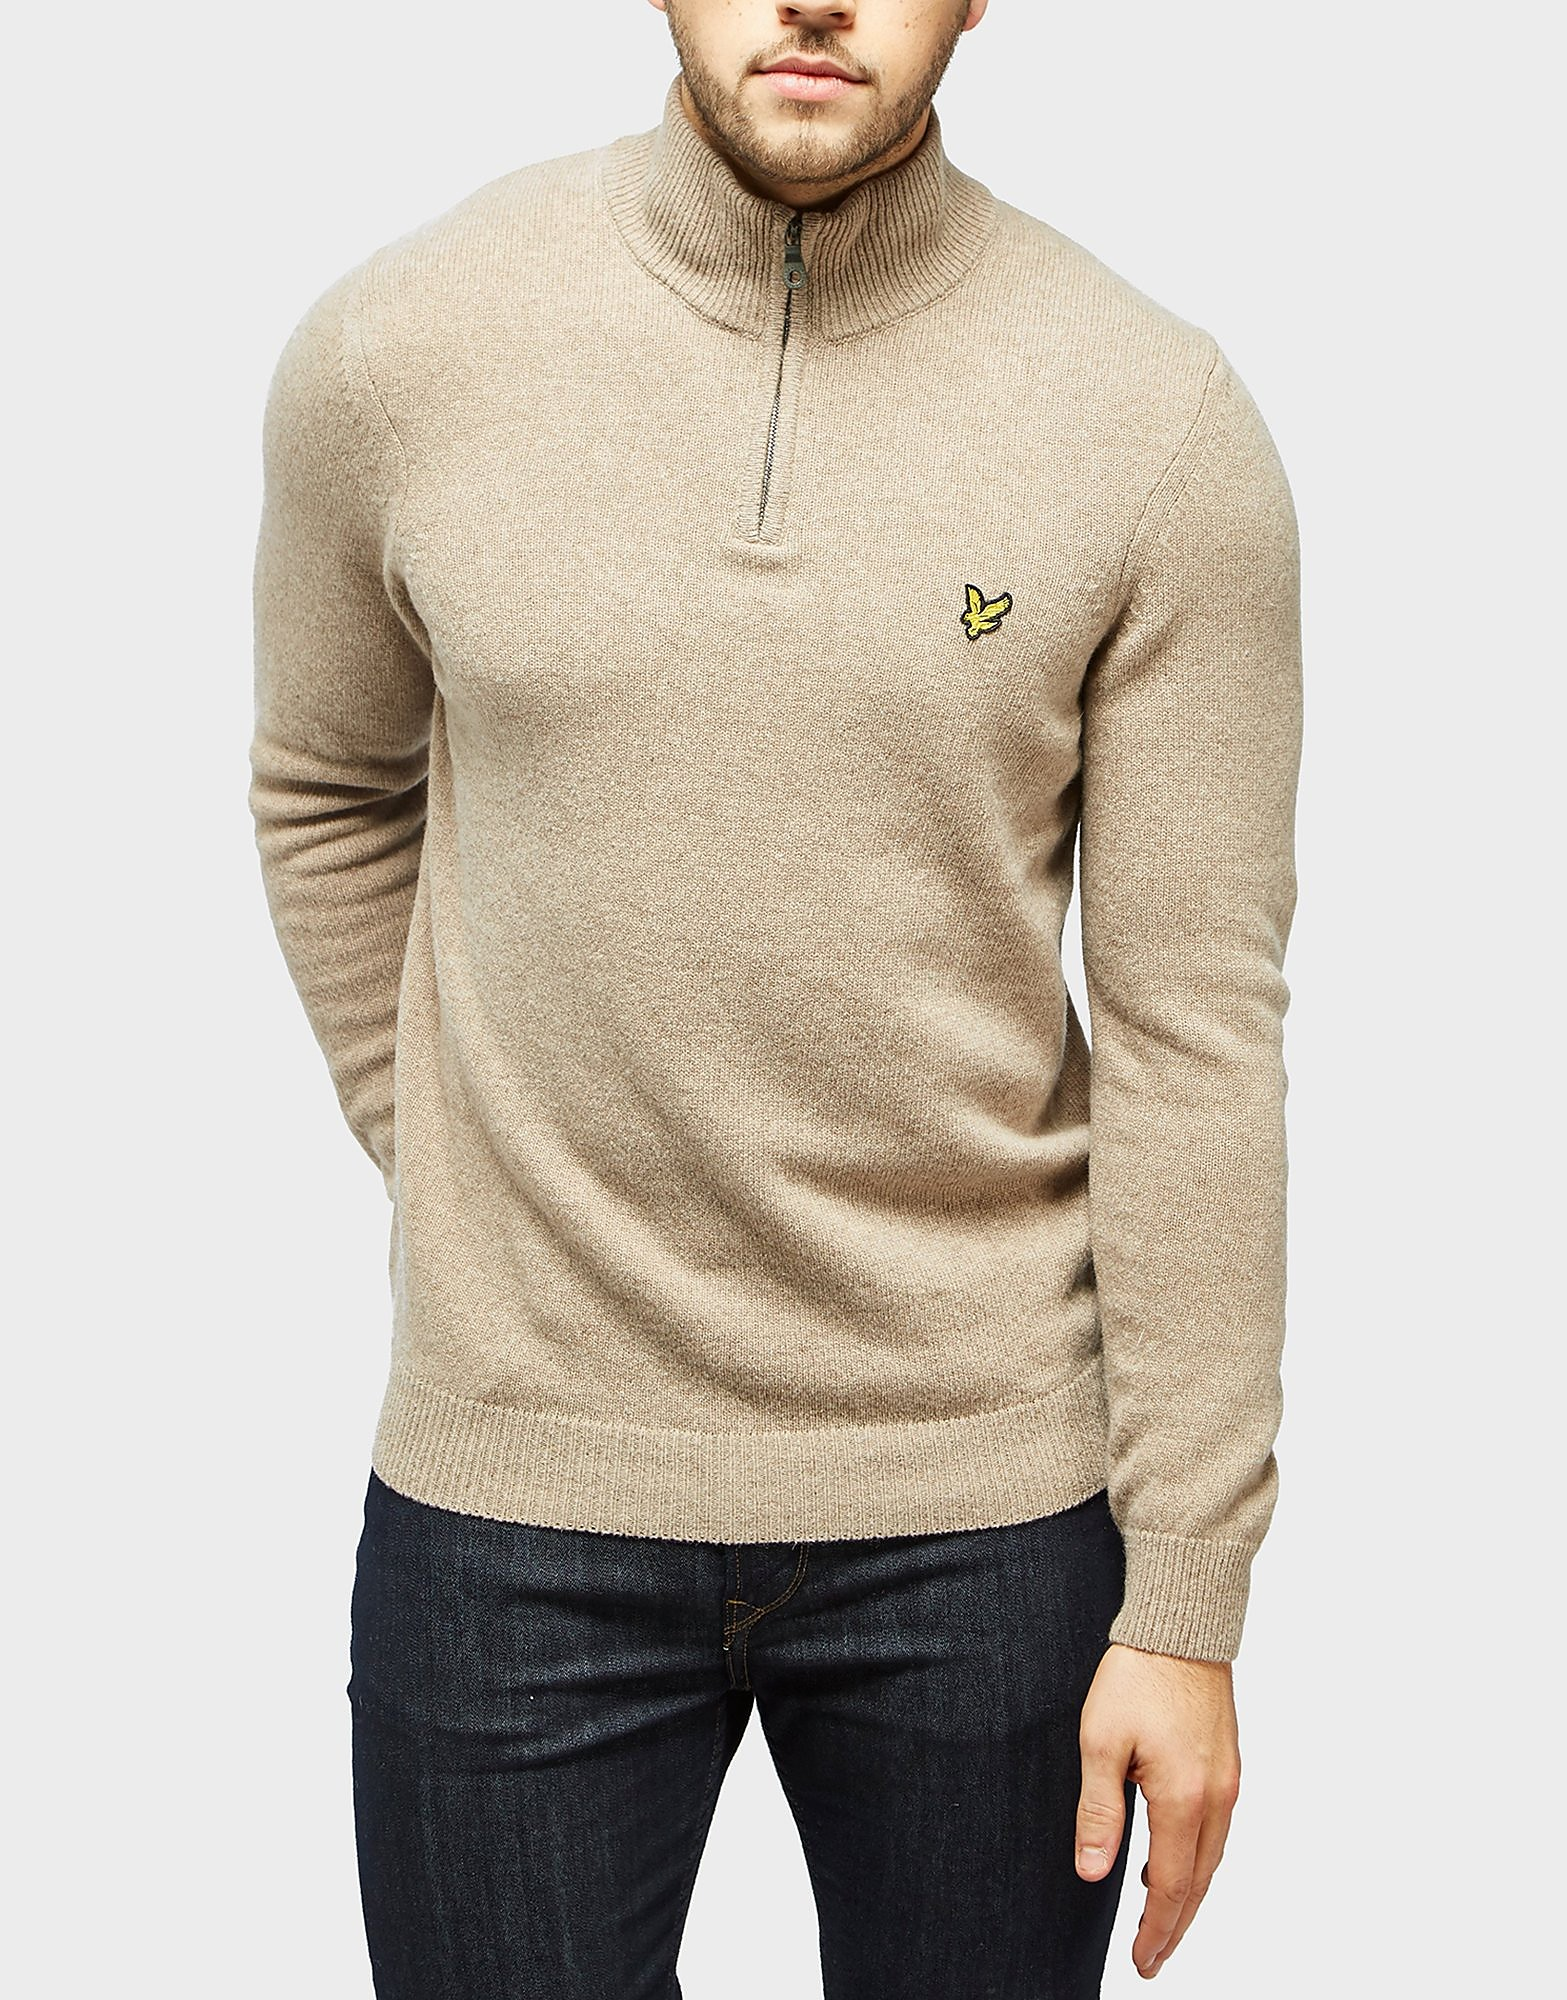 Lyle & Scott Lambswool Knit